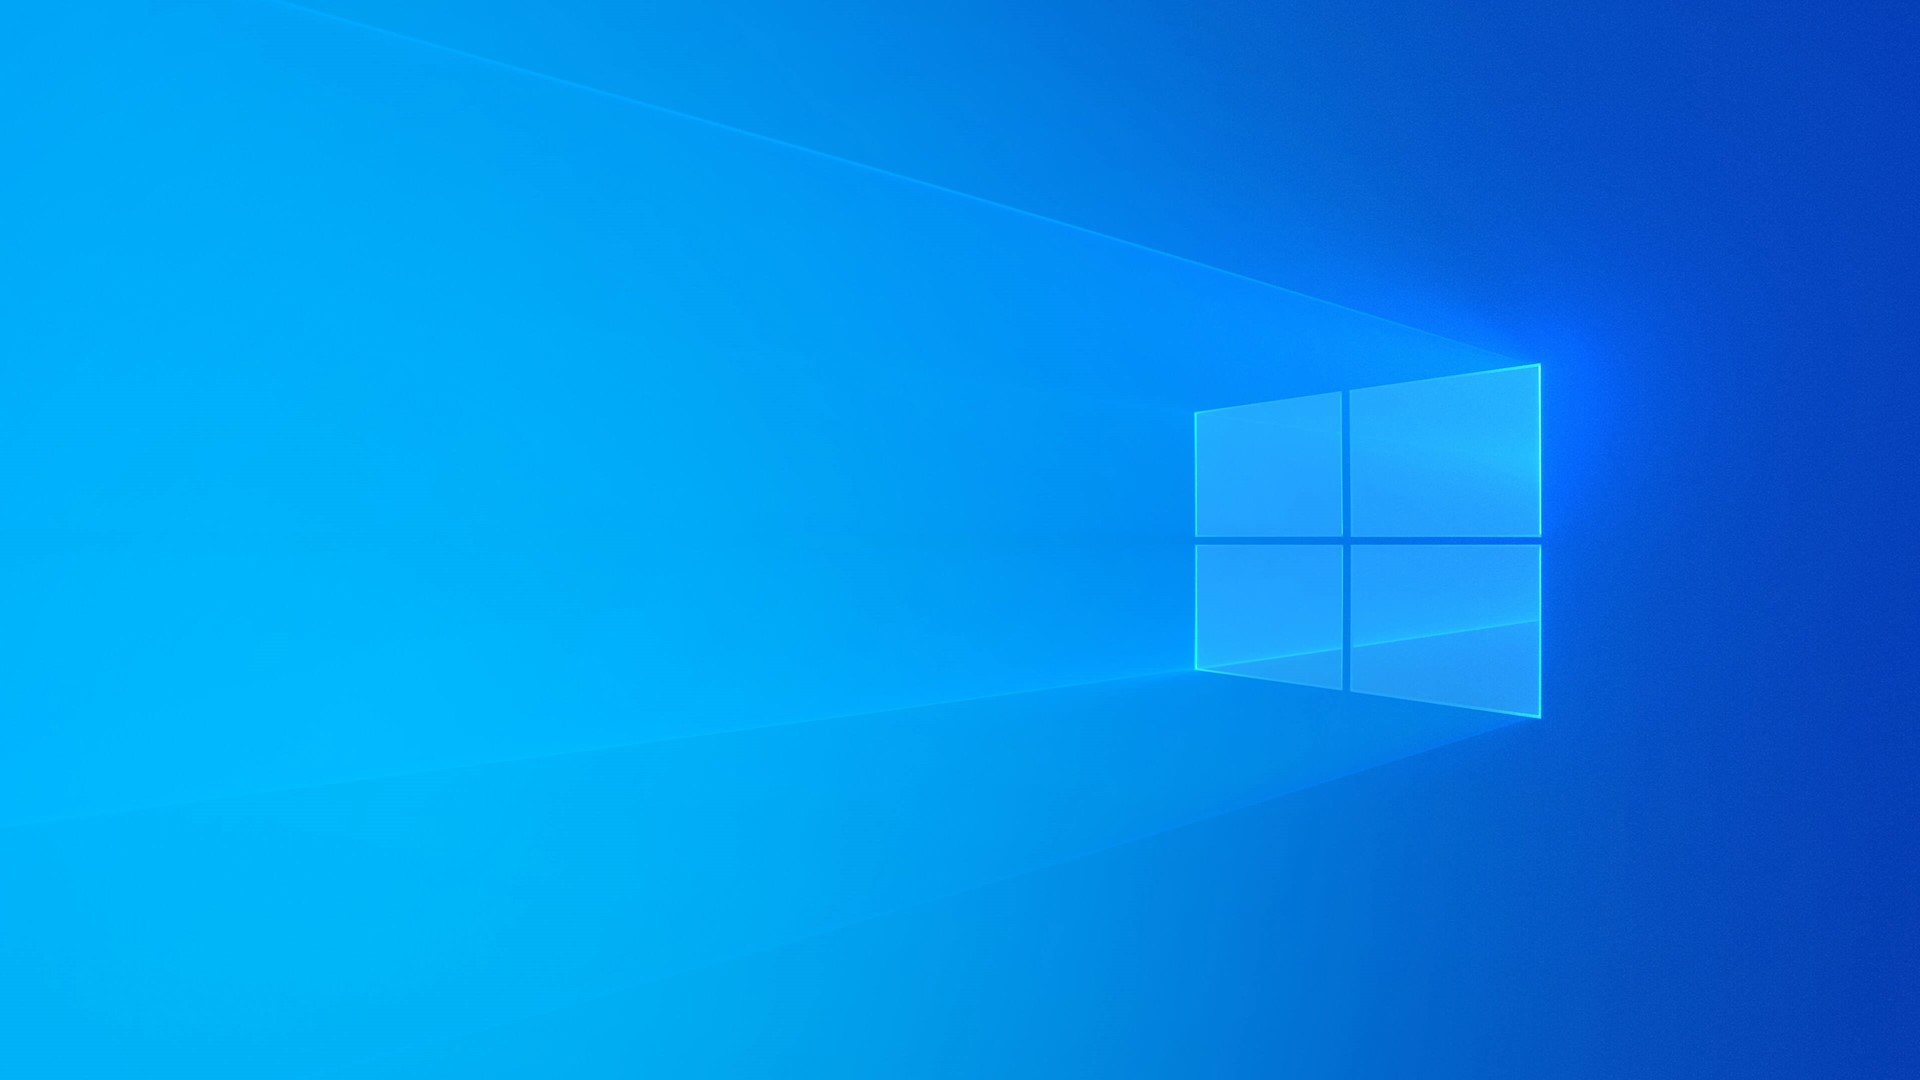 New Default Windows 10 Light Theme Wallpaper Now Available At Wallpaperhub At 4k Resolution Mspoweruser